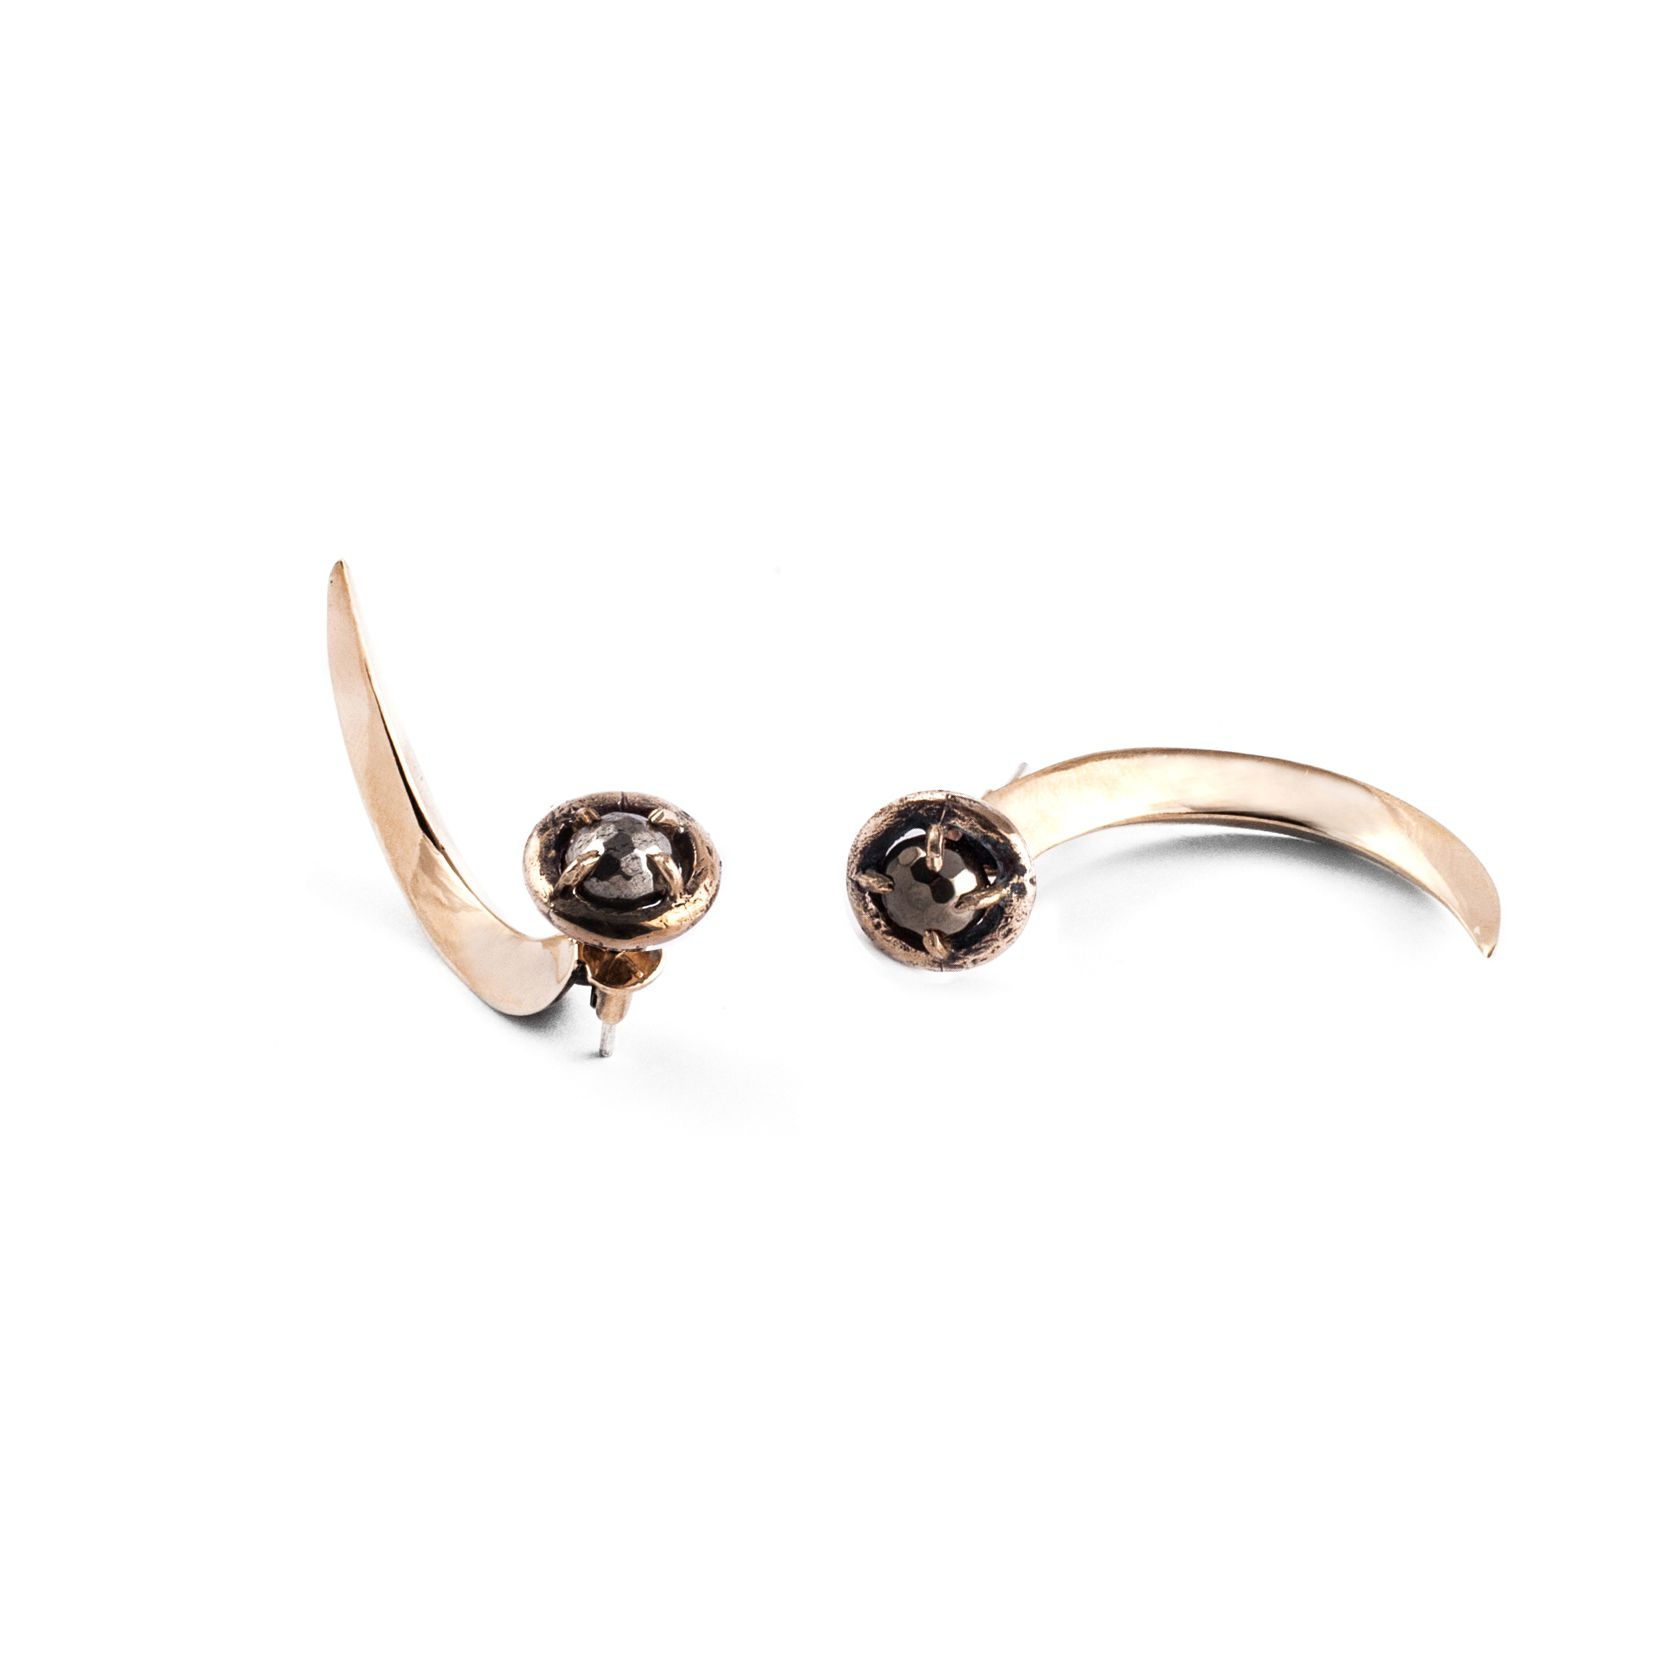 Pyrite Hooks Earrings in bronze, silver and pyrite